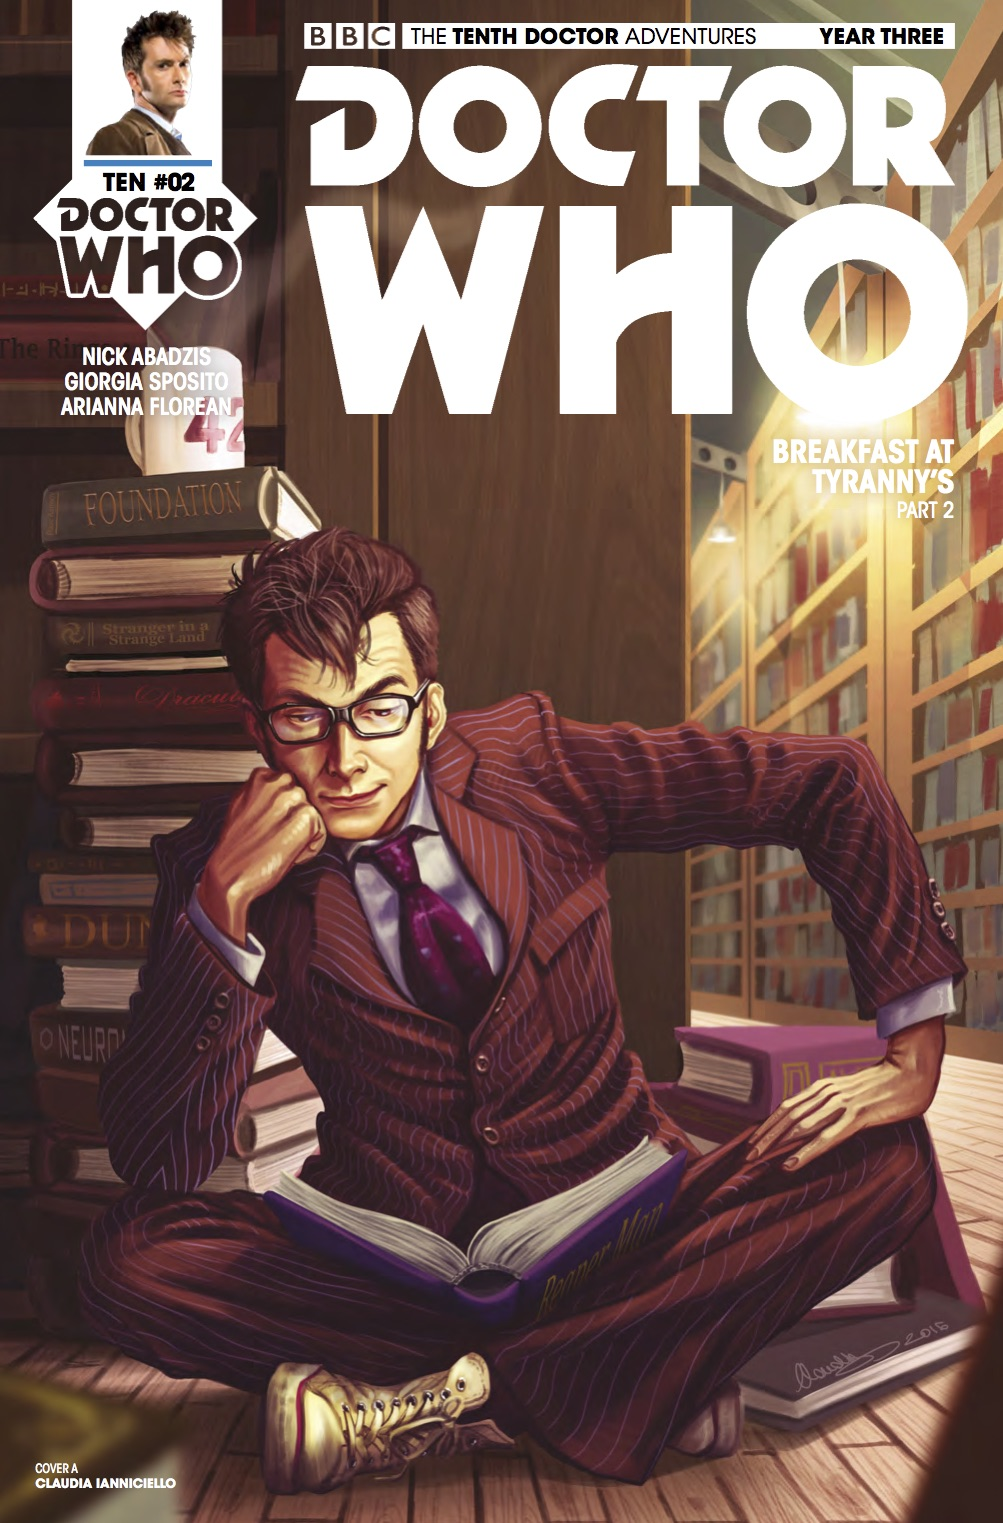 THE_TENTH_DOCTOR_3_2_Cover_A (Credit: Titan / Claudia Ianniciello)